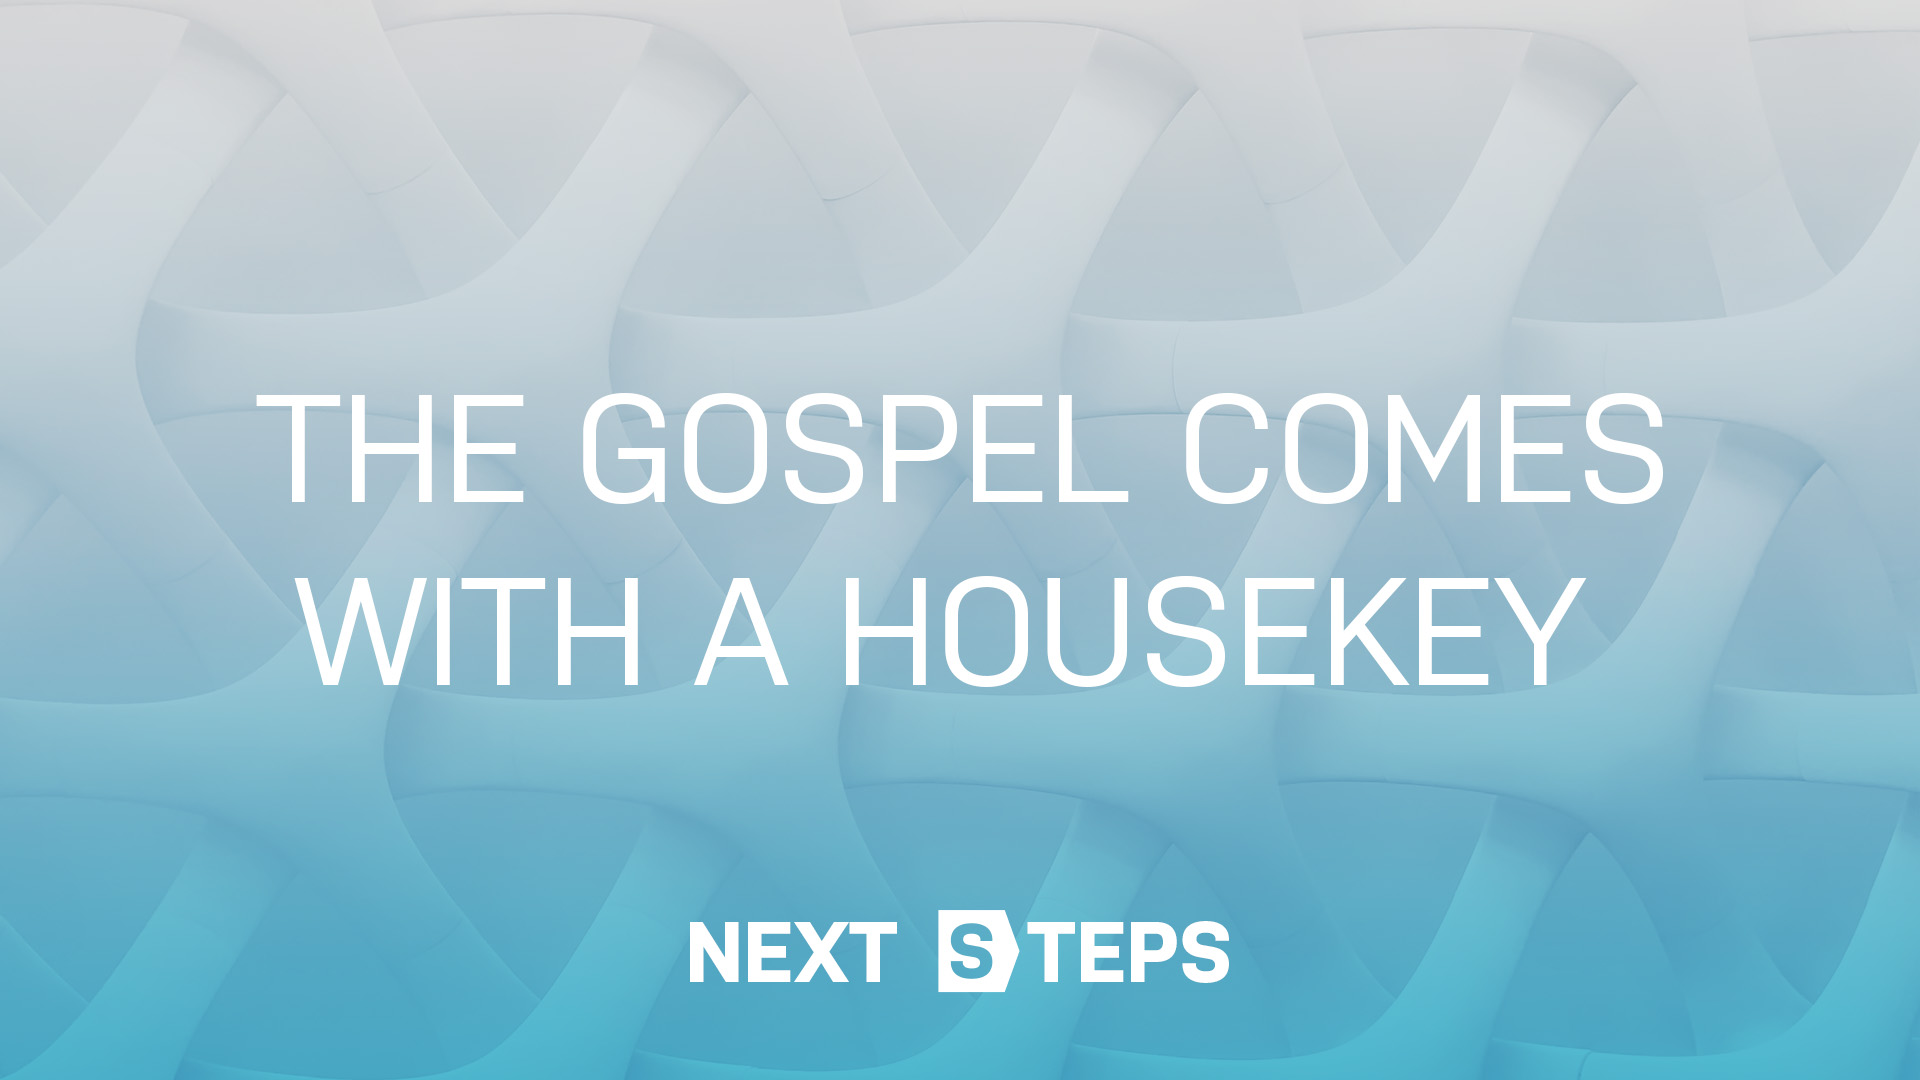 The Gospel Comes With A Housekey